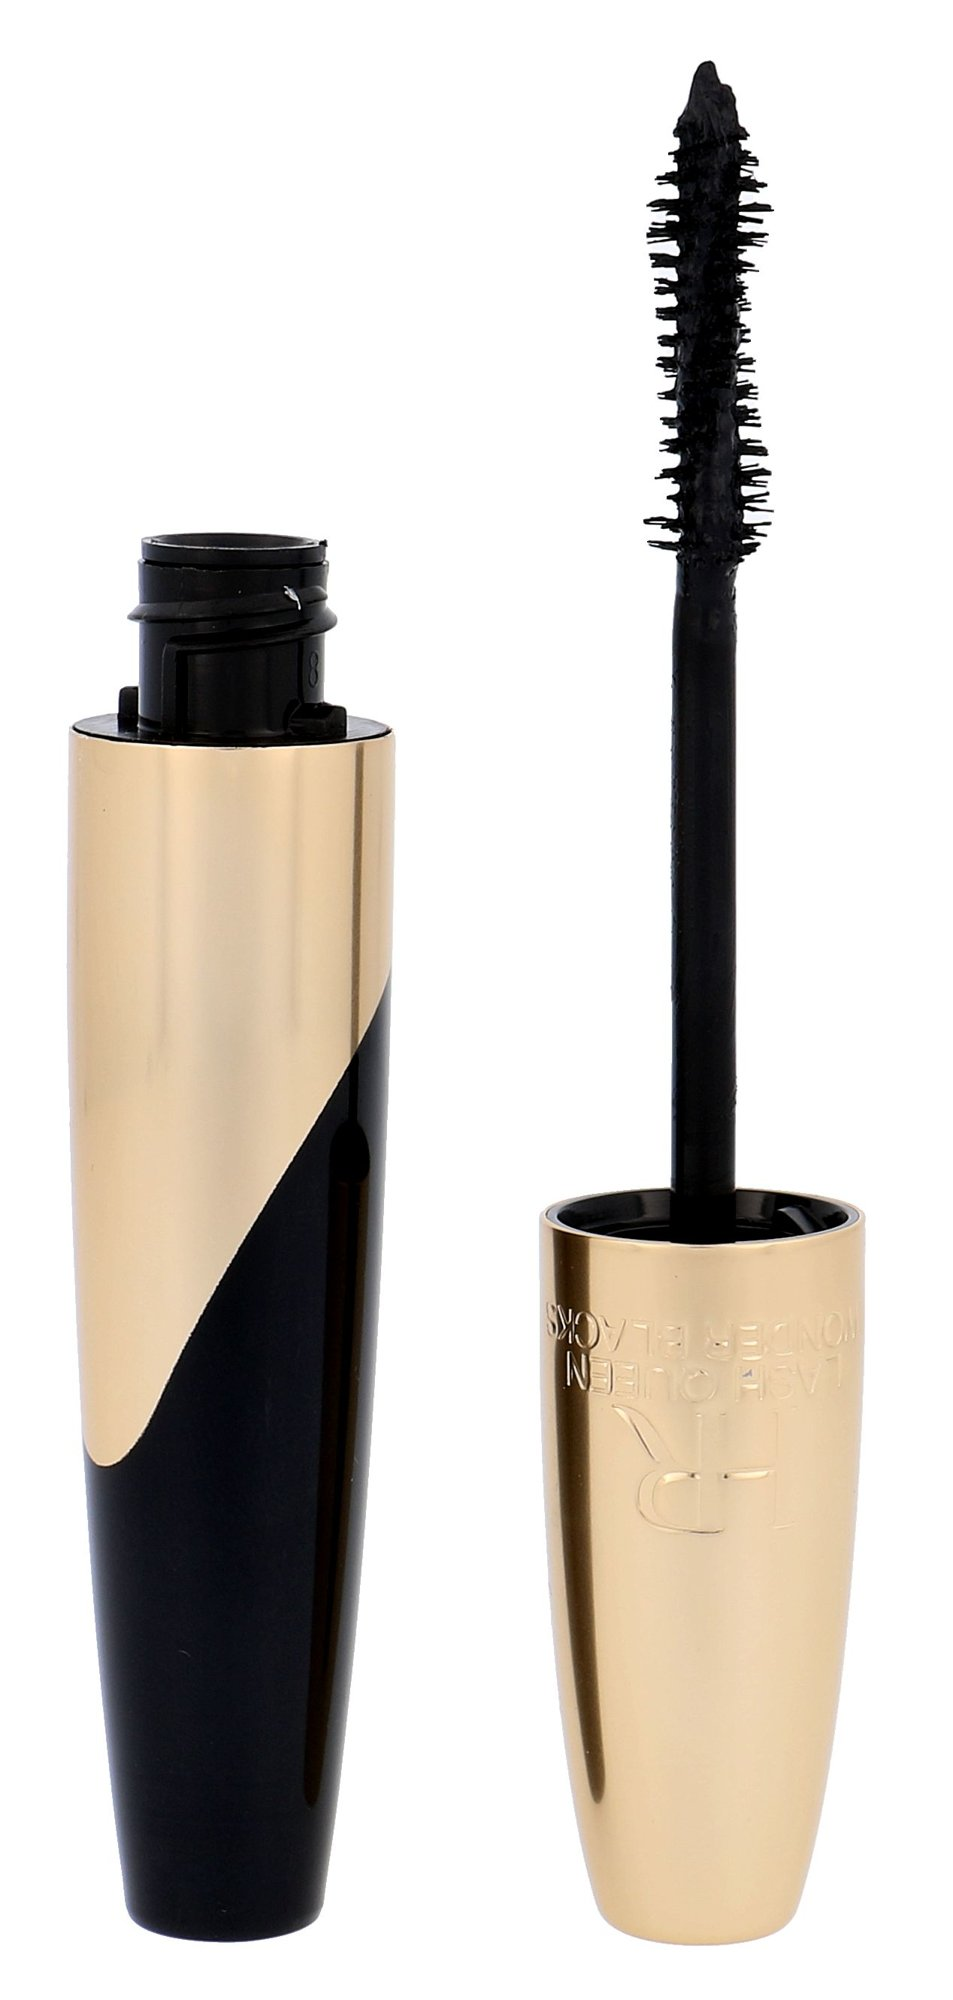 Helena Rubinstein Lash Queen Cosmetic 7ml 01 Wonderful Black